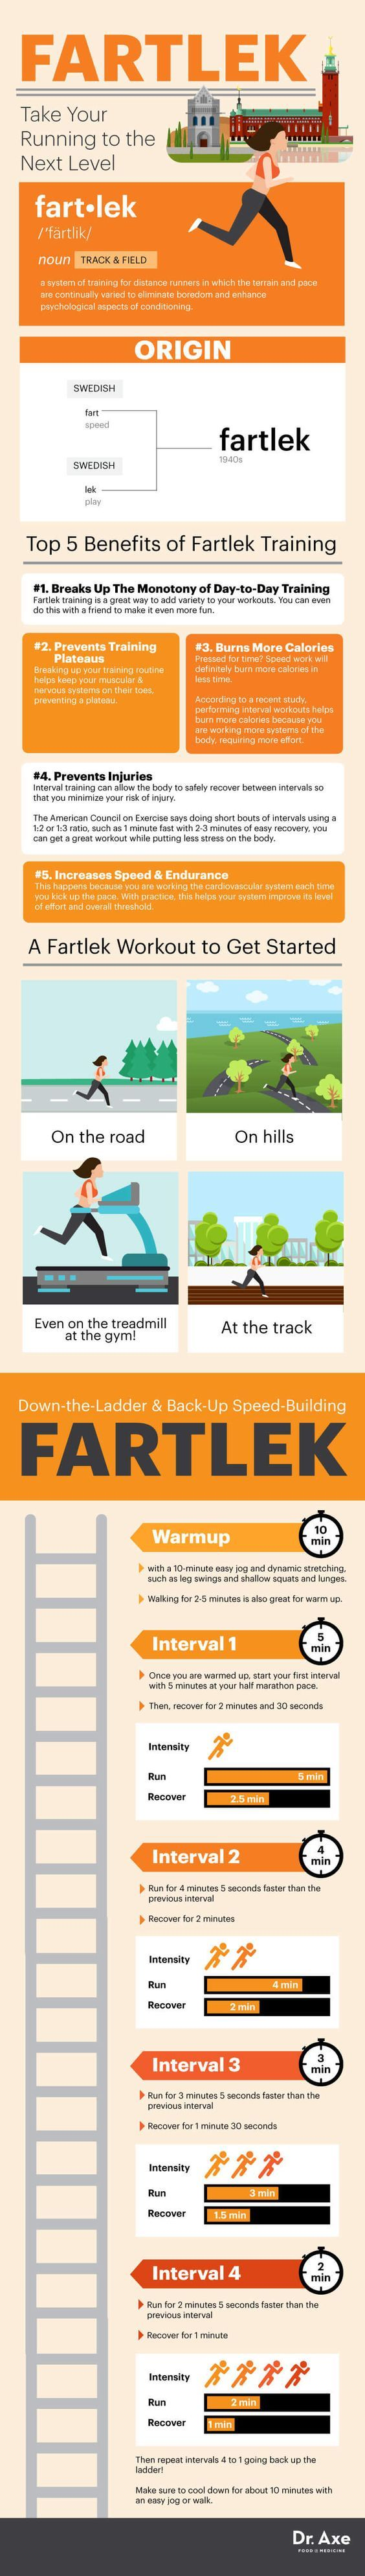 Fartlek: A Swedish Training Trick for Better Running